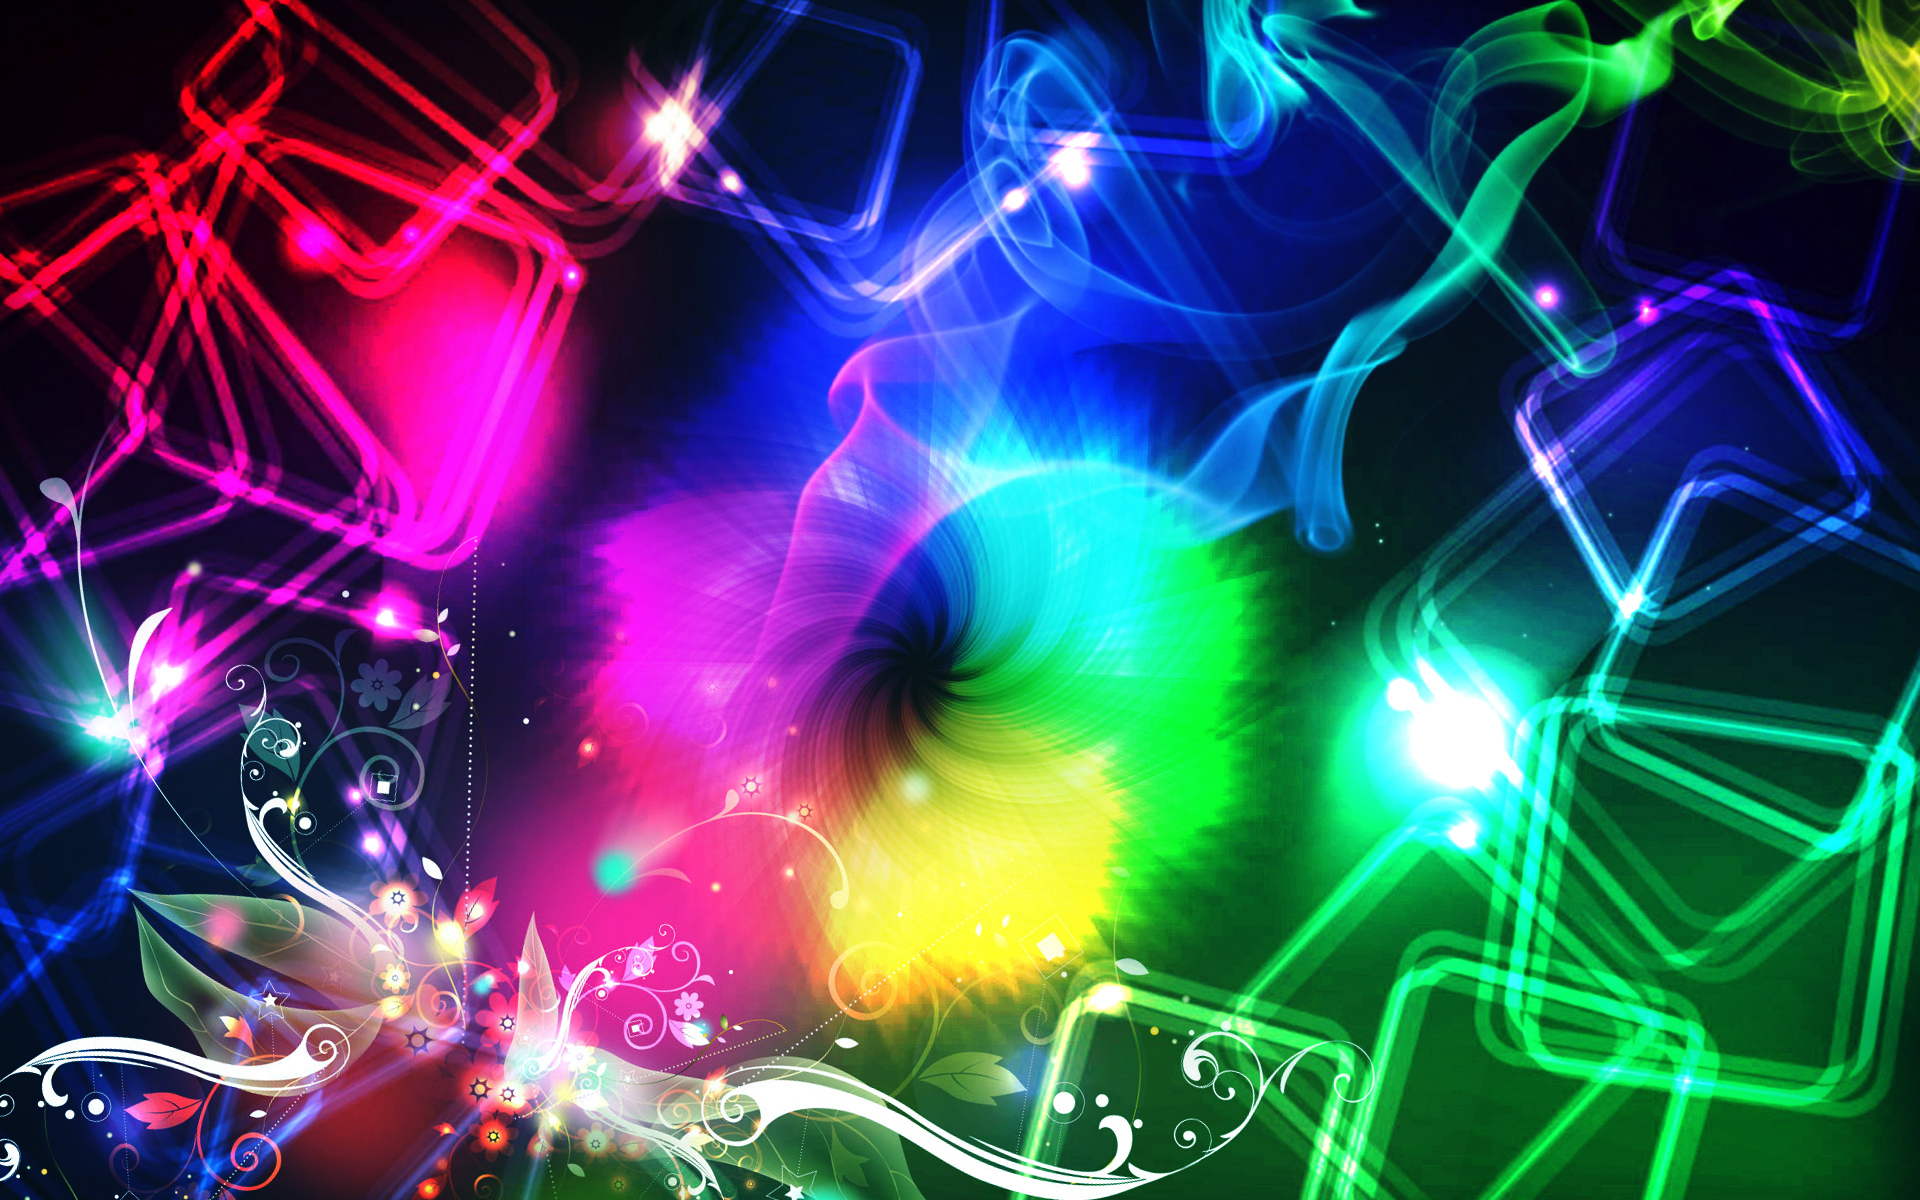 Free Download Colorful Wallpaper For Walls E Entertainment